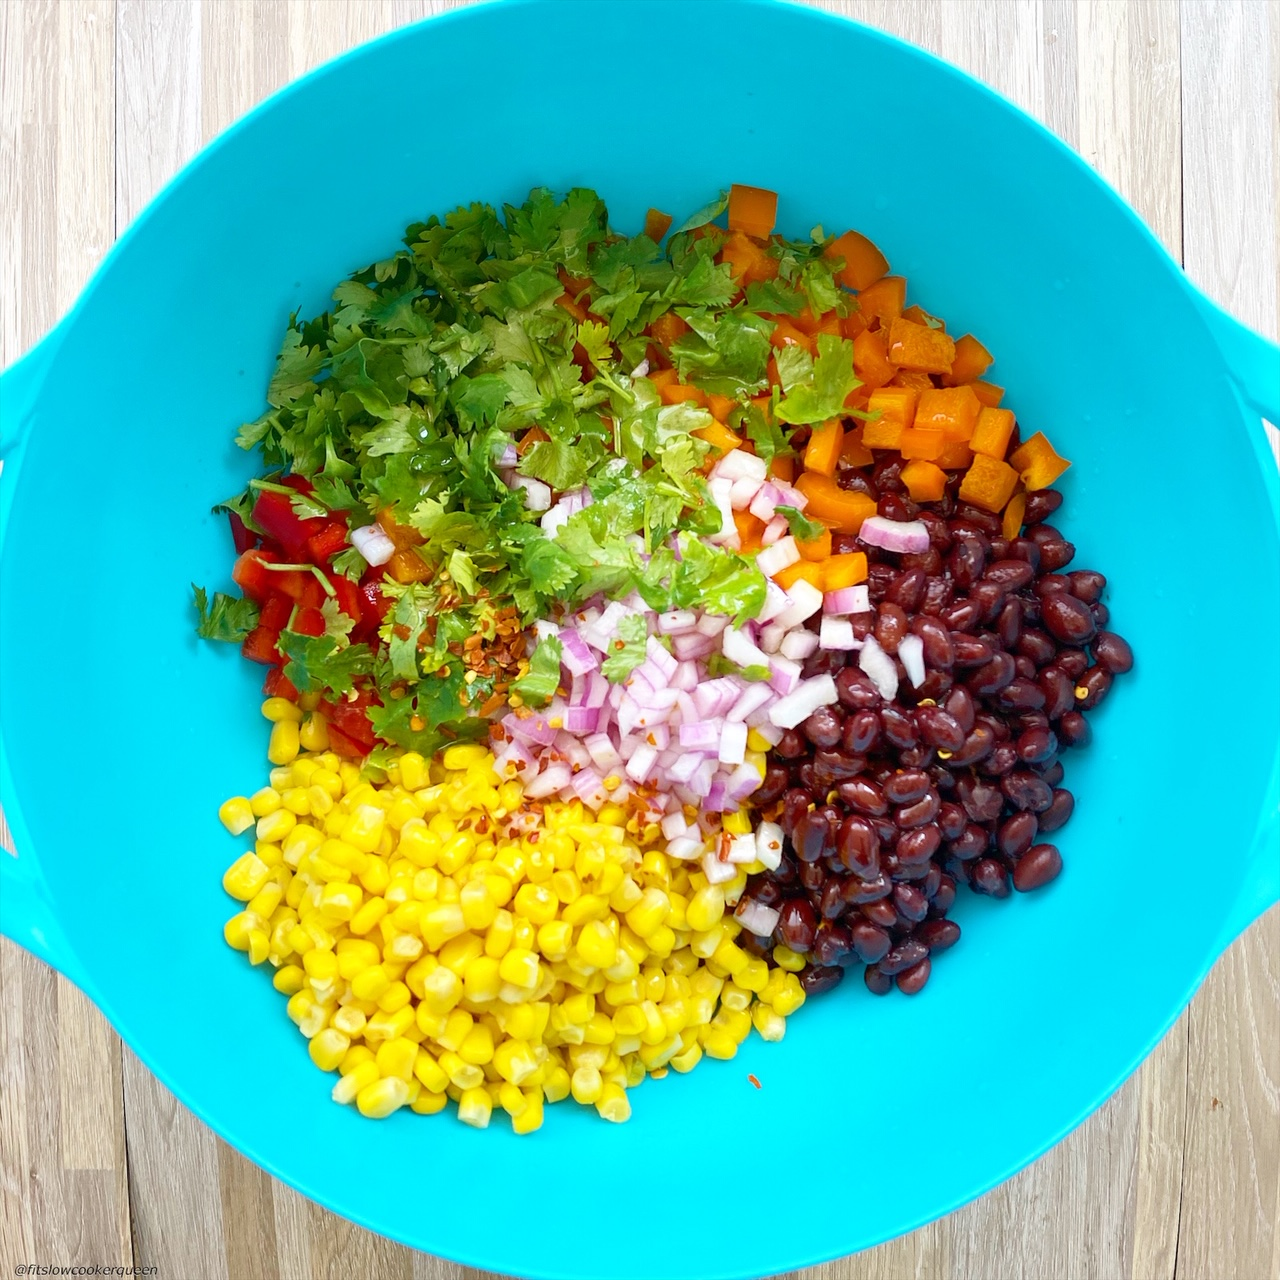 In a large bowl but not mixed together: black beans, corn, diced orange bell pepper, diced red bell pepper, red onion, fresh cilantro